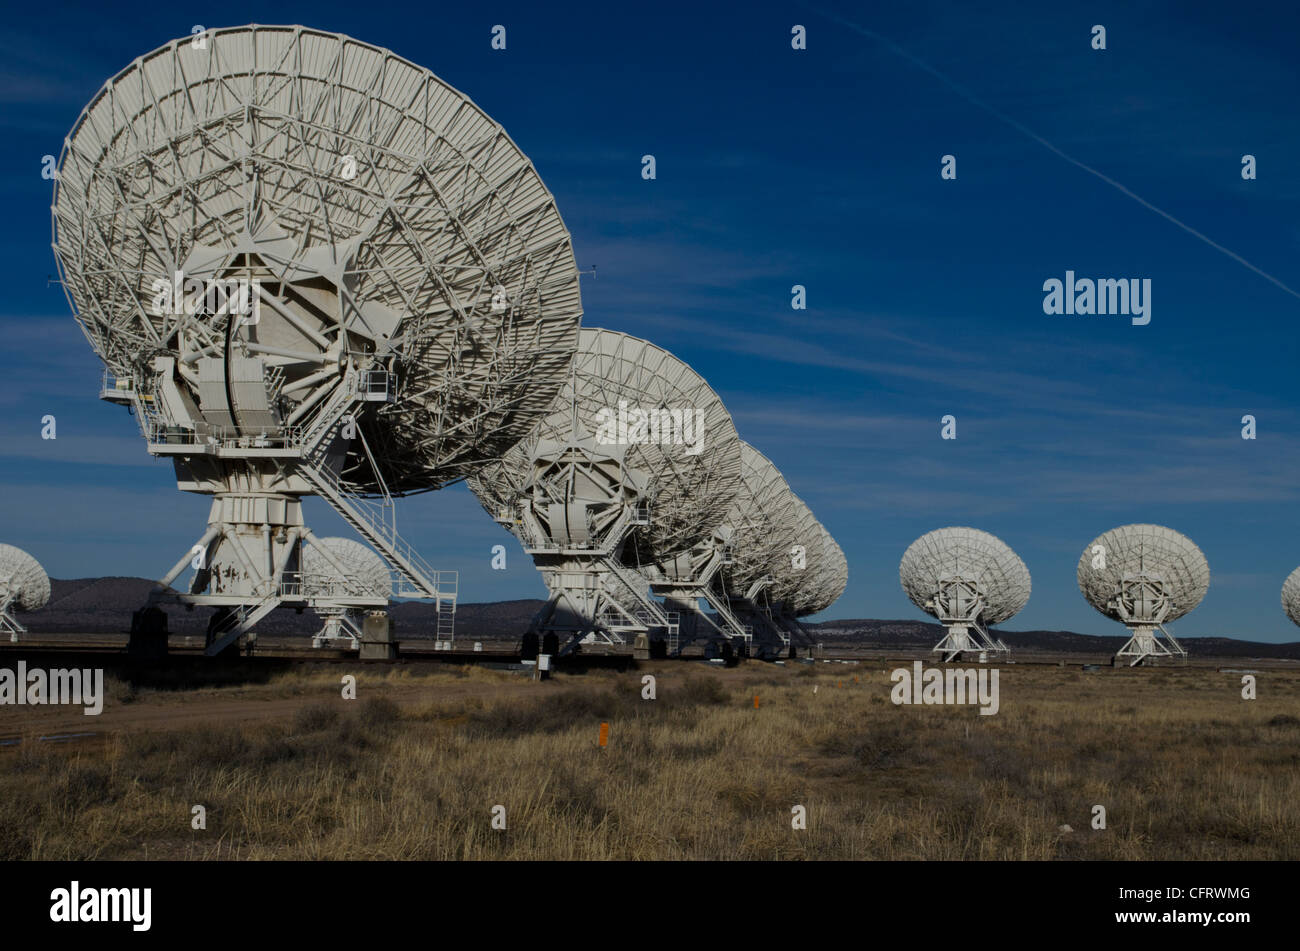 VLA, Very Large Array, New Mexico, National Radio Astronomy observatories - Stock Image